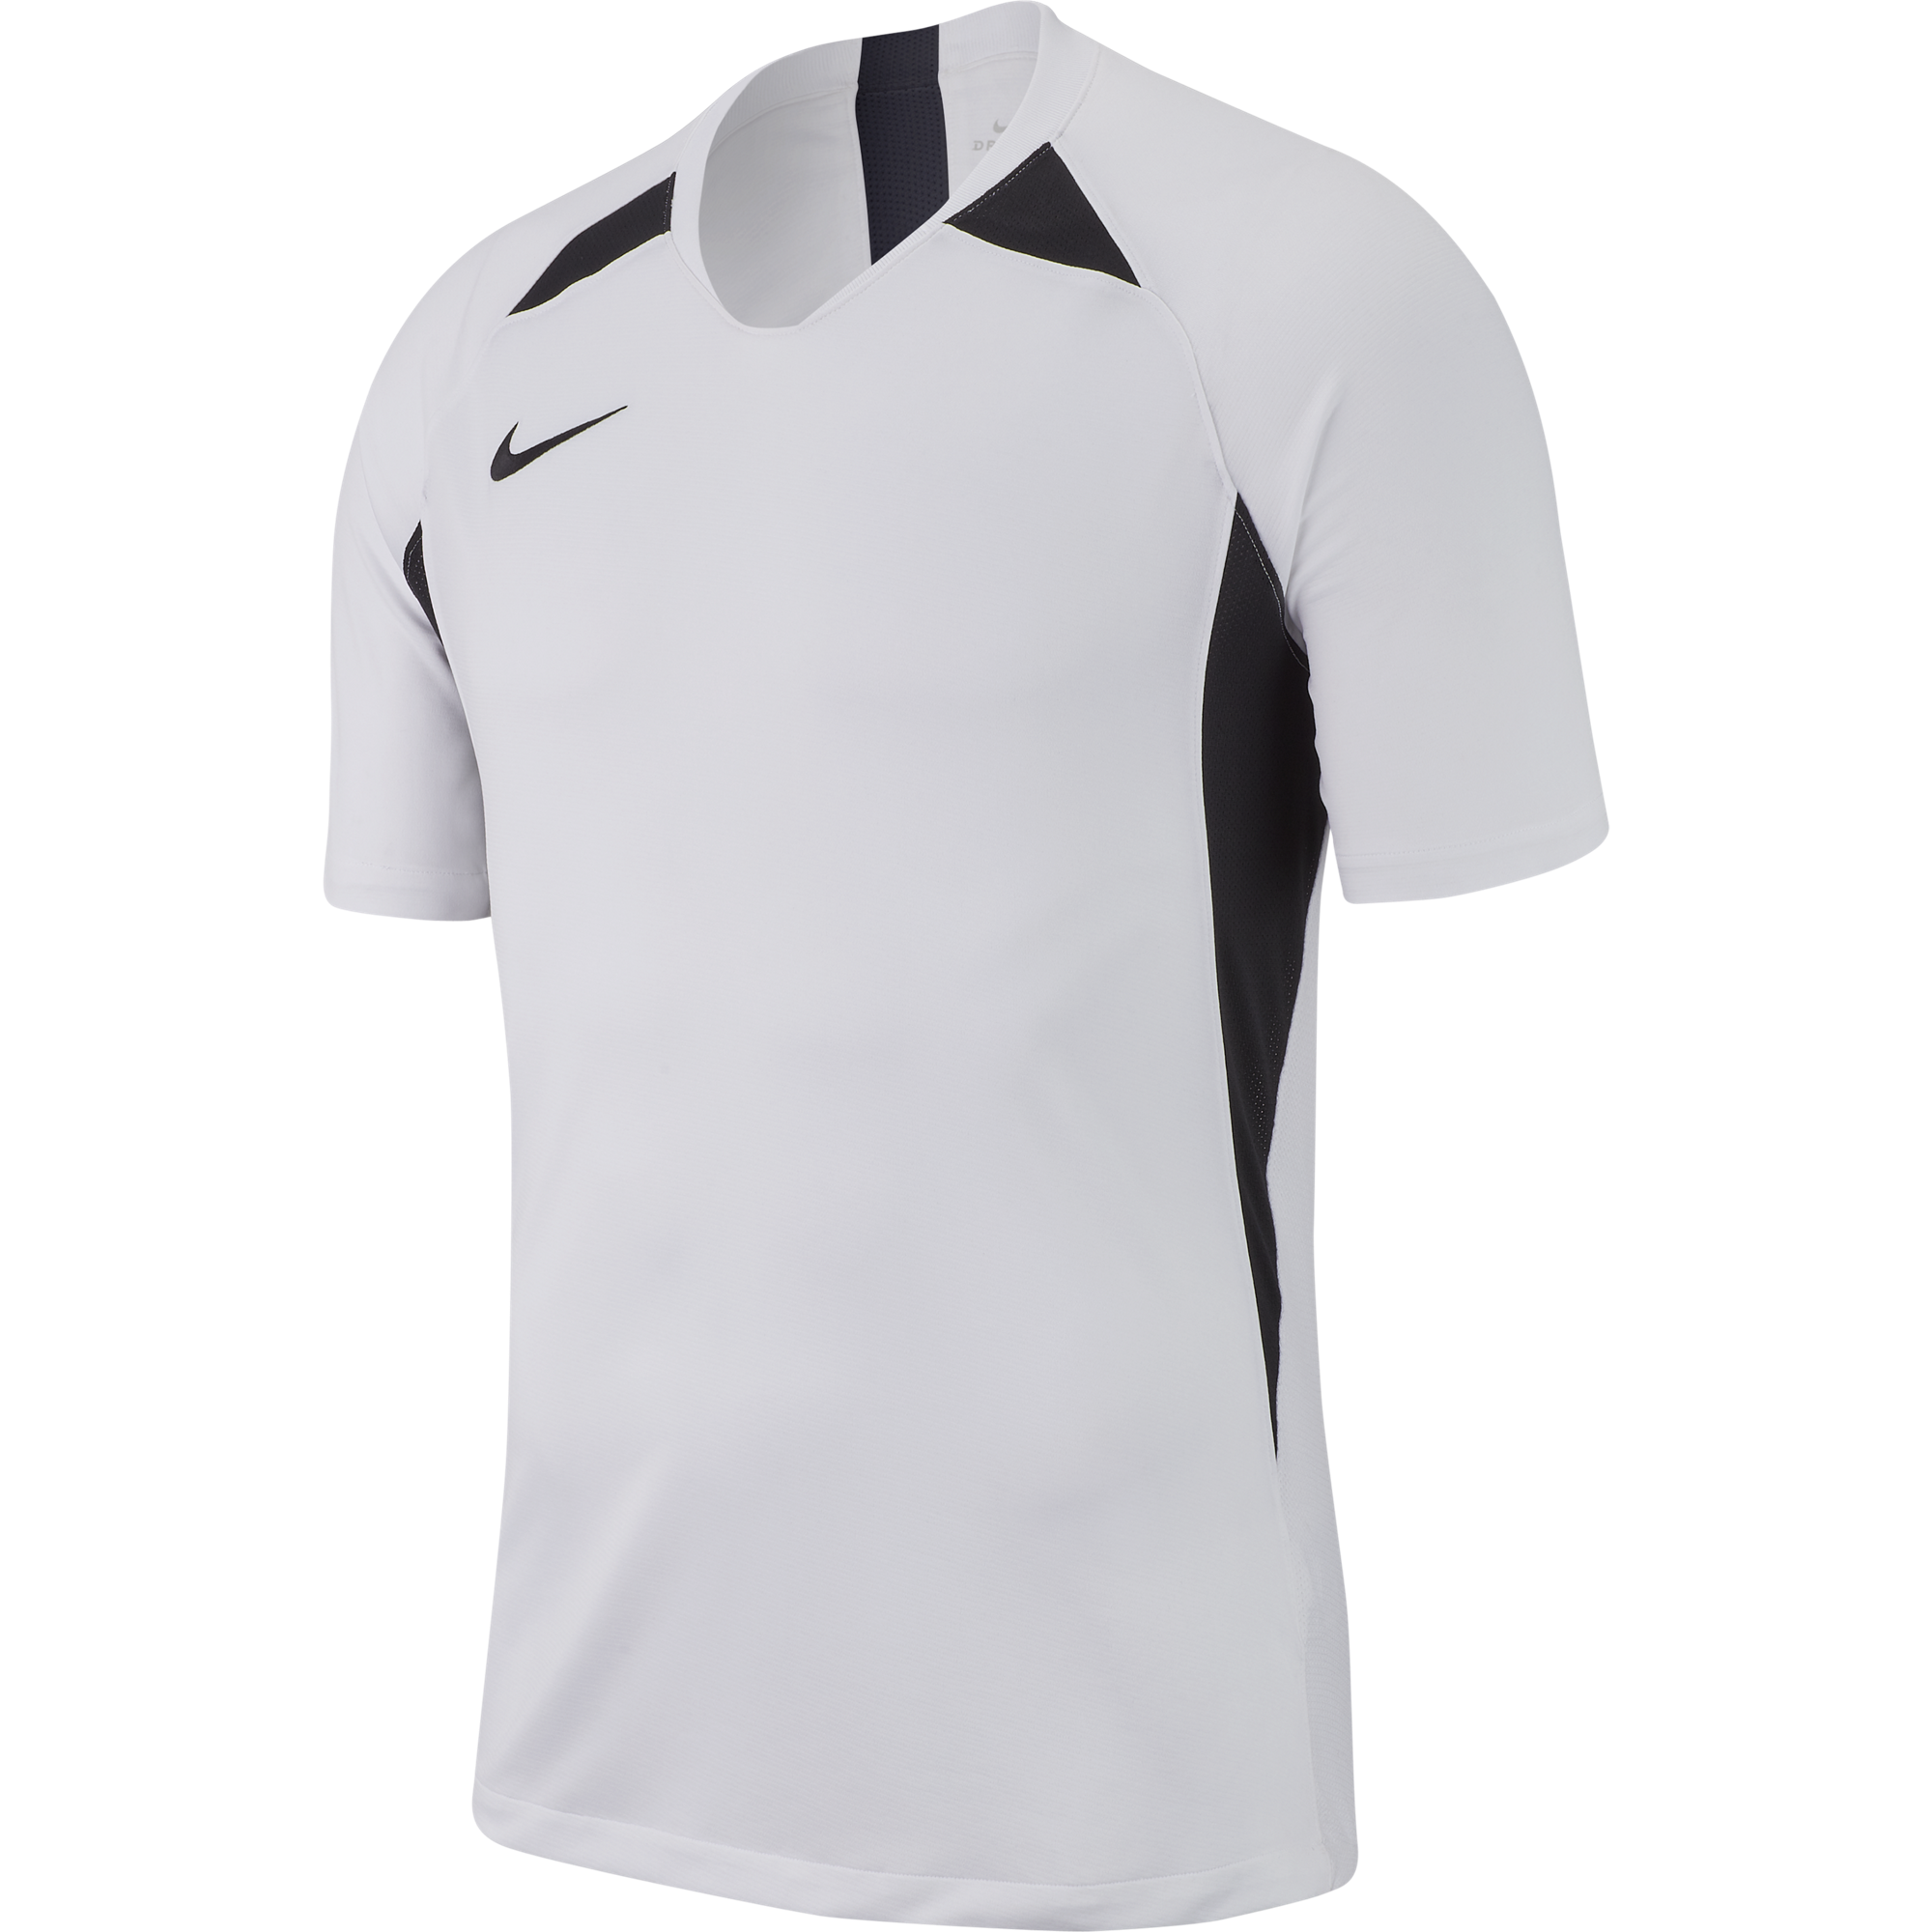 nike legend jersey white black  15995 p